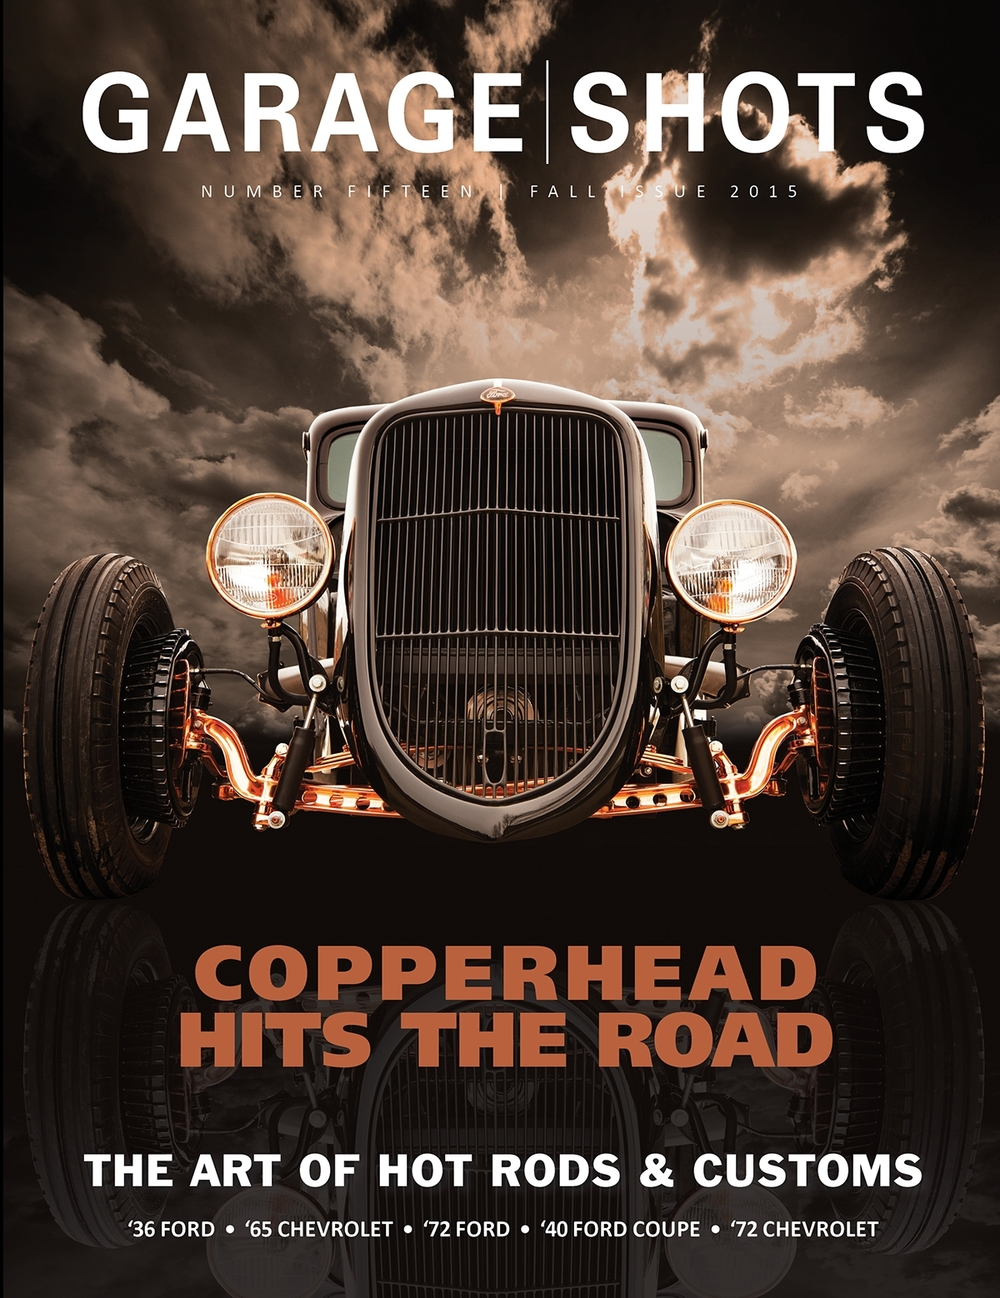 Featuring   '36 Ford    '65 Chevrolet    '72 Ford    '40 Ford Coupe    '72 Chevrolet